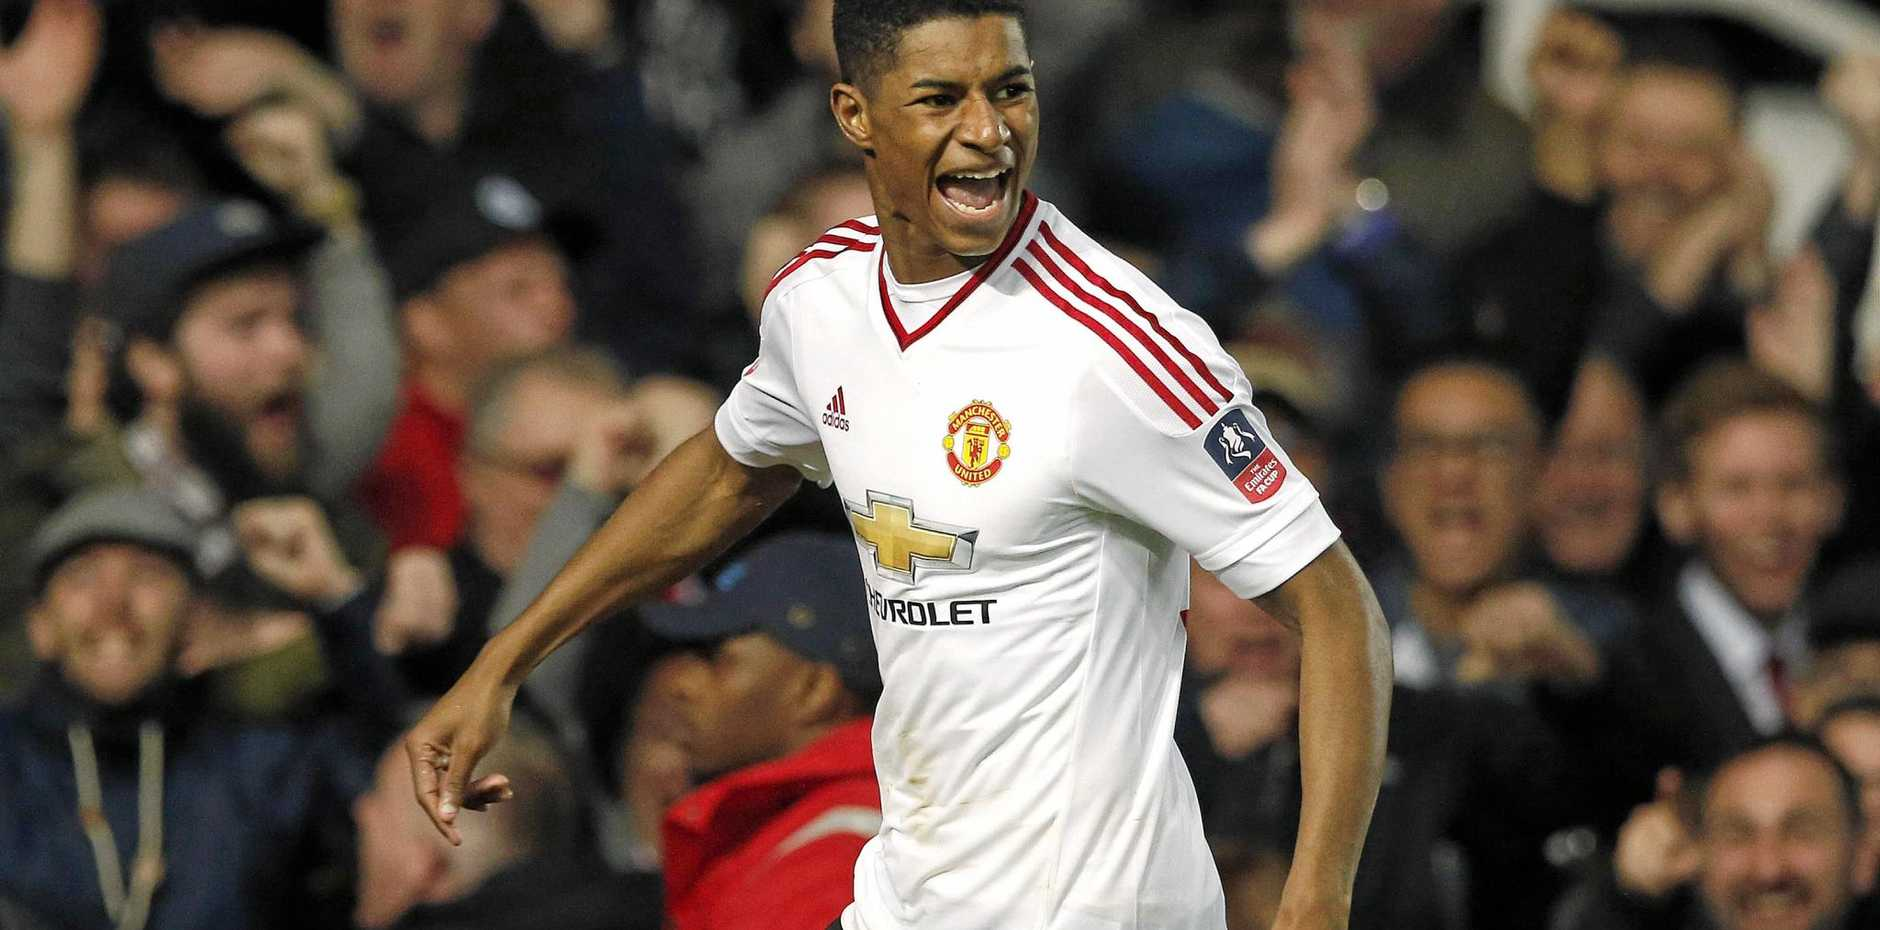 Manchester United's teenage striker Marcus Rashford.